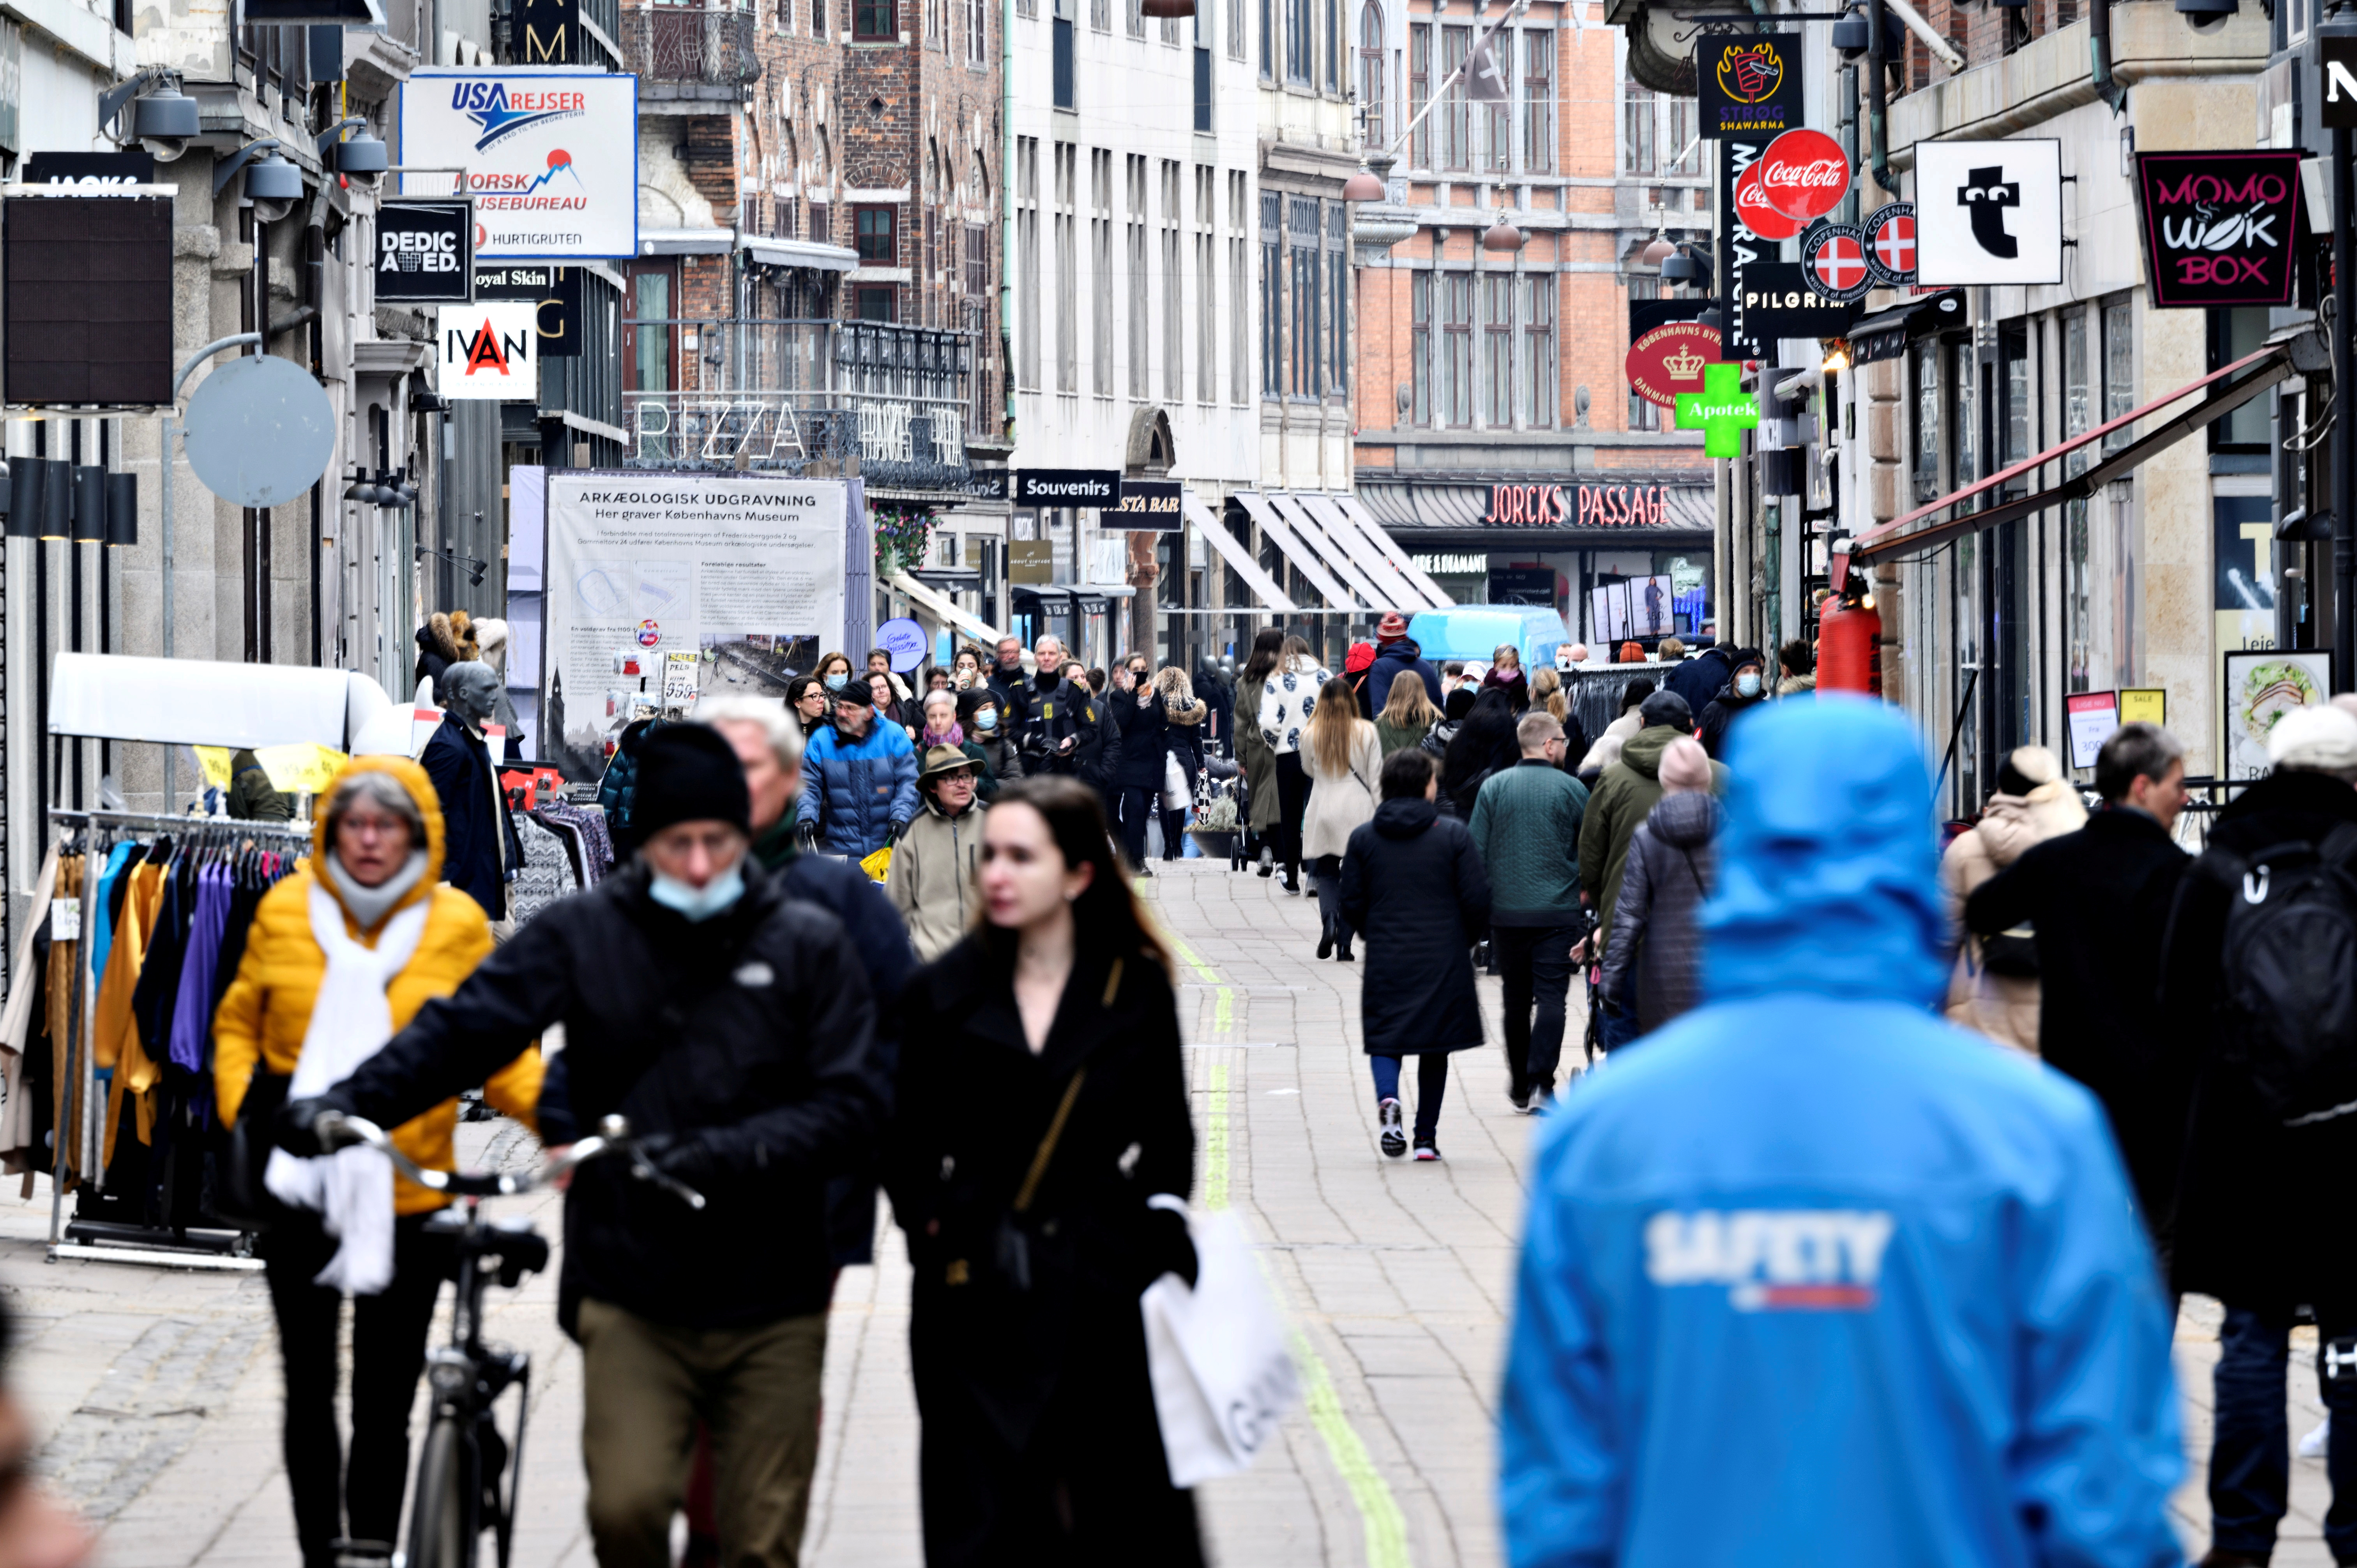 People walk on a street as stores reopen amid the coronavirus disease (COVID-19) pandemic in Copenhagen, Denmark March 1, 2021. Ritzau Scanpix/Philip Davali via REUTERS/File Photo